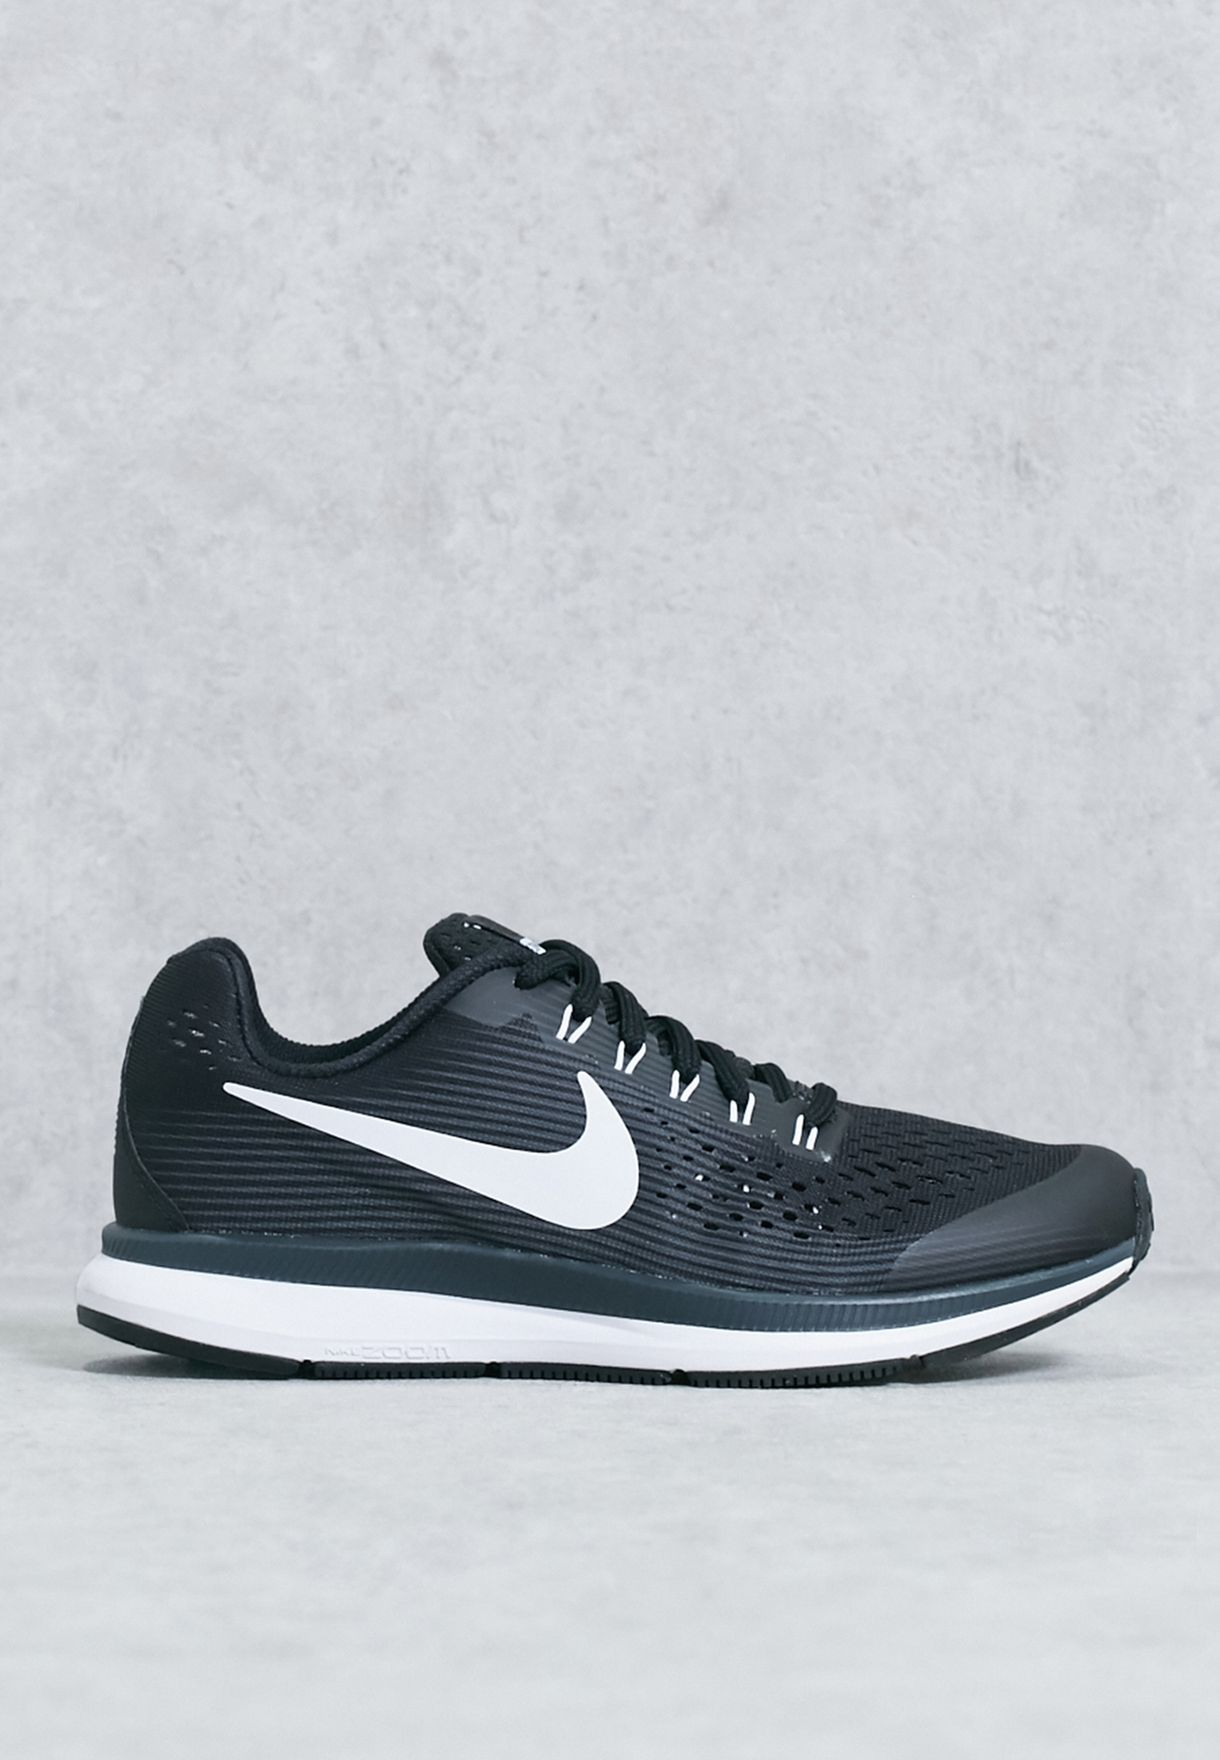 9c35cc7594066 Shop Nike black Zoom Pegasus 34 Kids 881953-002 for Kids in UAE ...